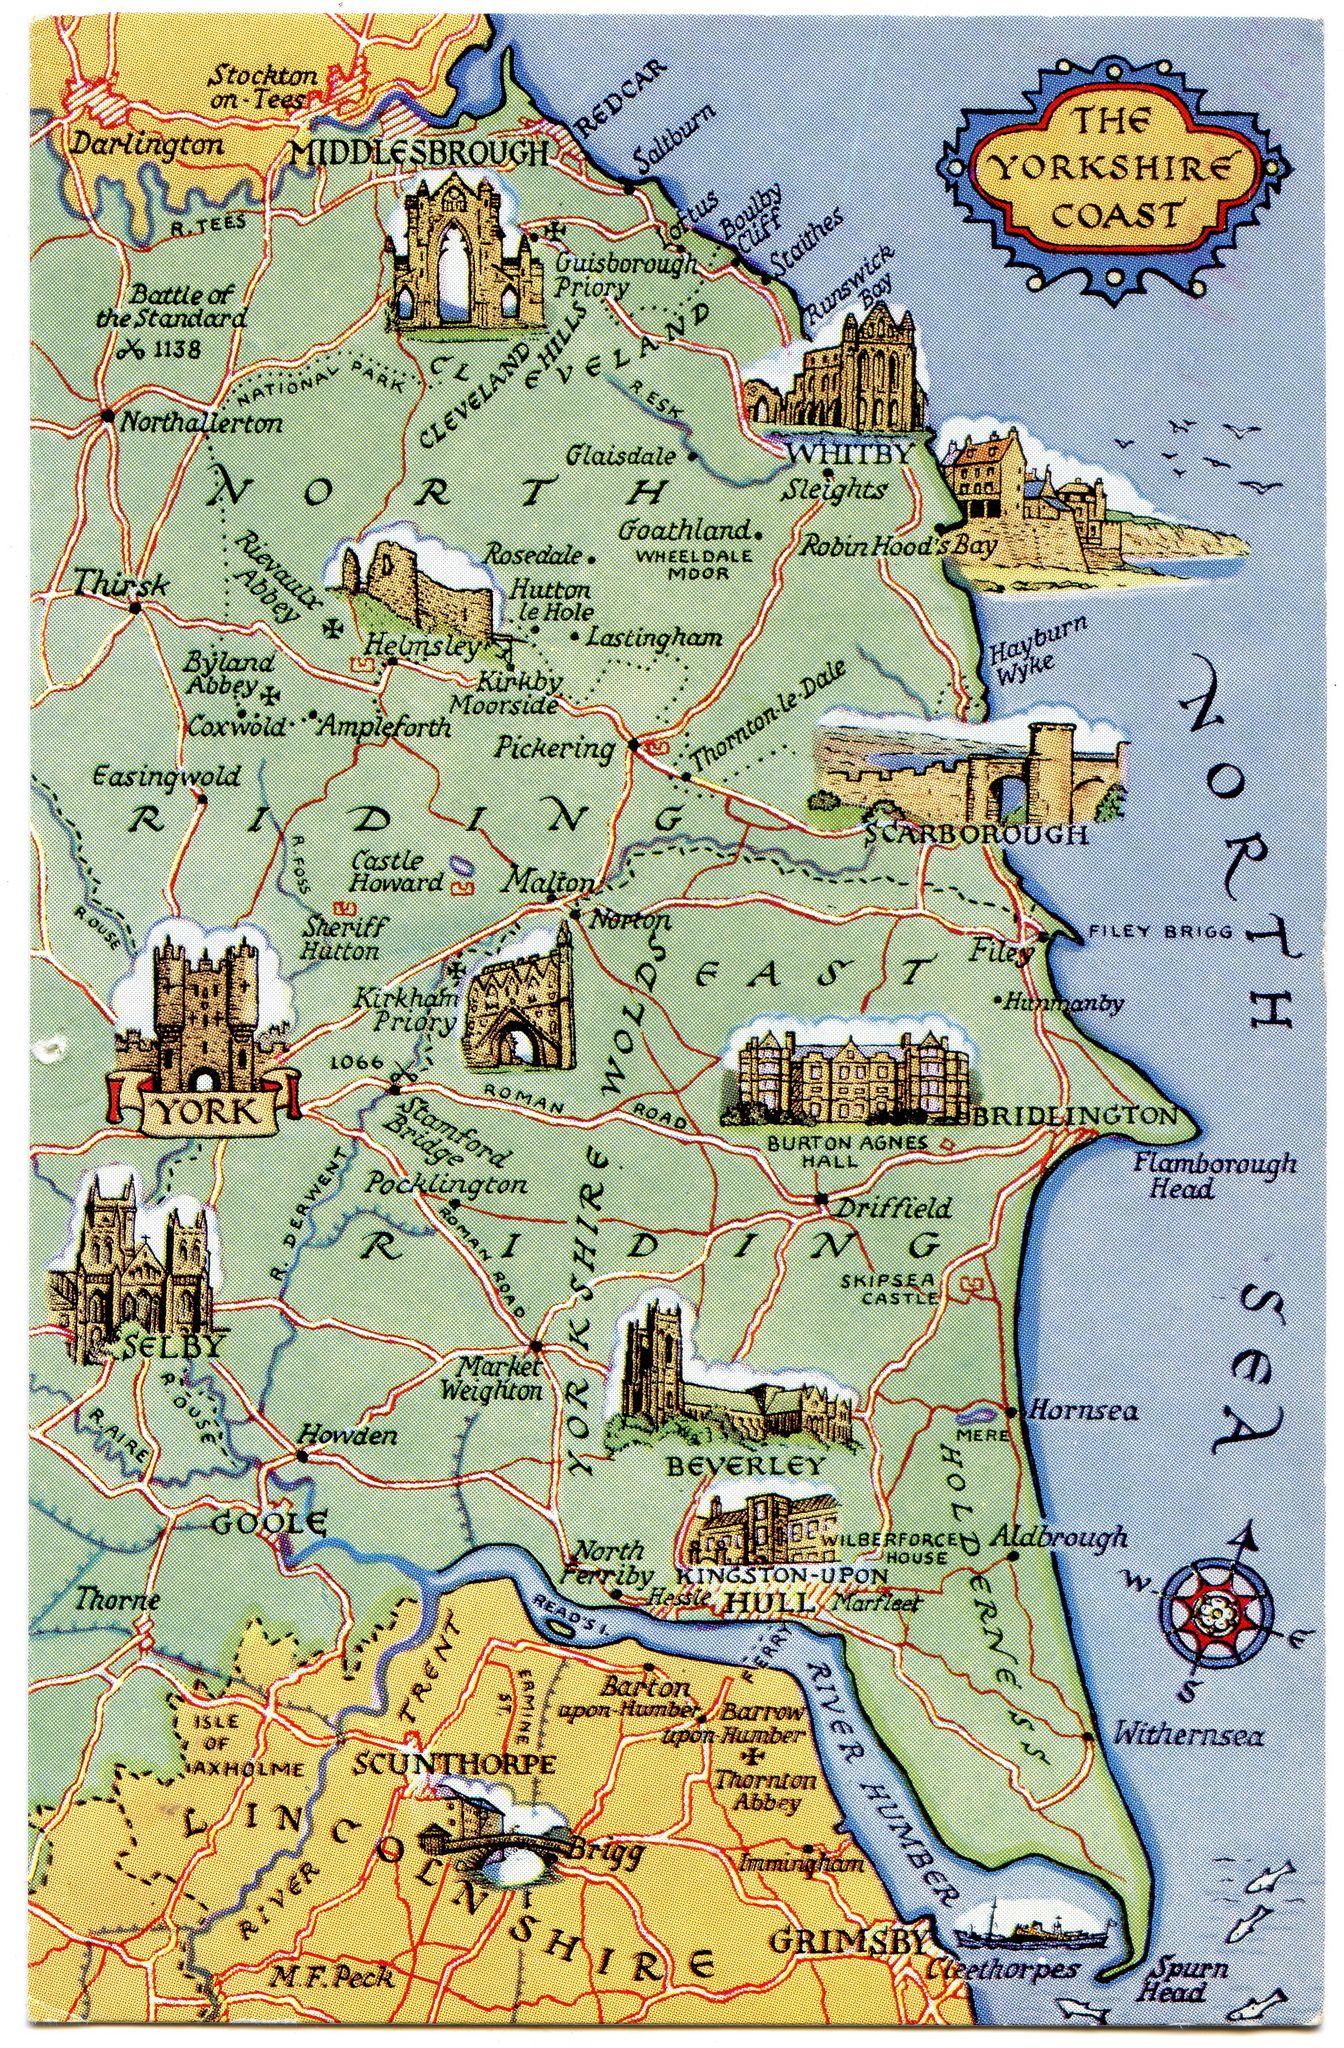 Postcard Map Of The Yorkshire Coast In 2020 Yorkshire England